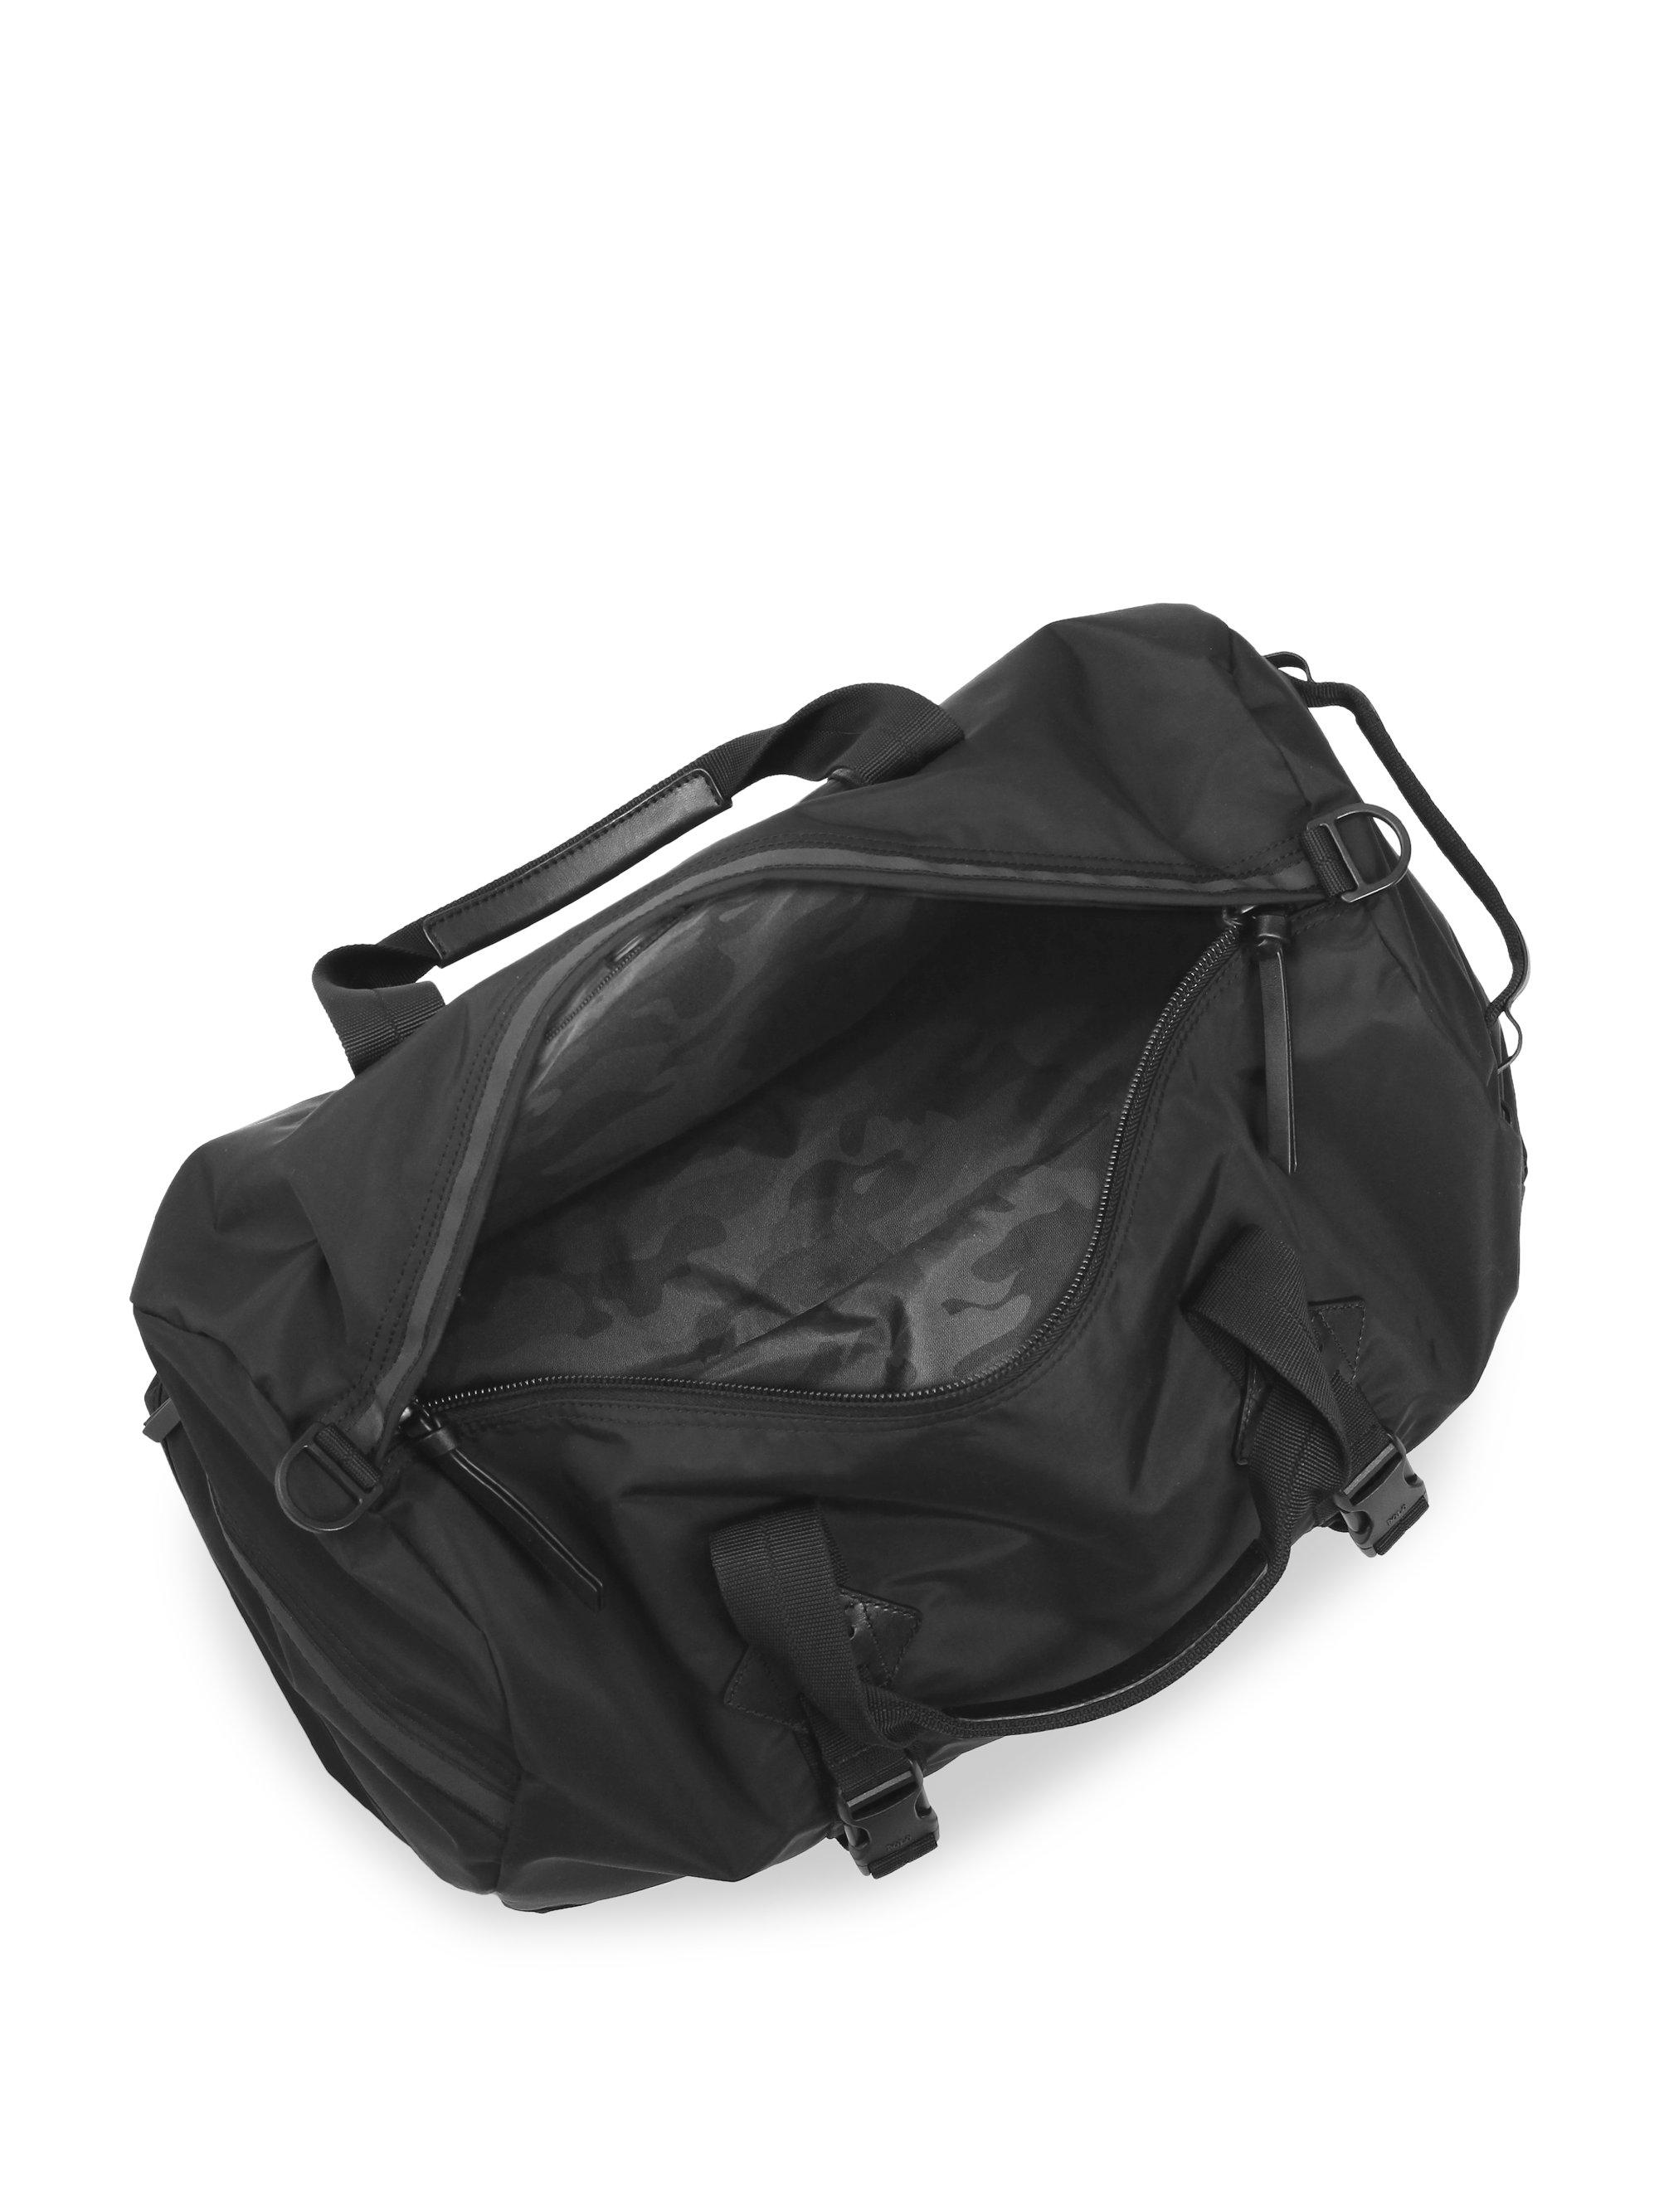 b72b2e5a0897 Lyst - Polo Ralph Lauren City Explorer Duffel Bag in Black for Men